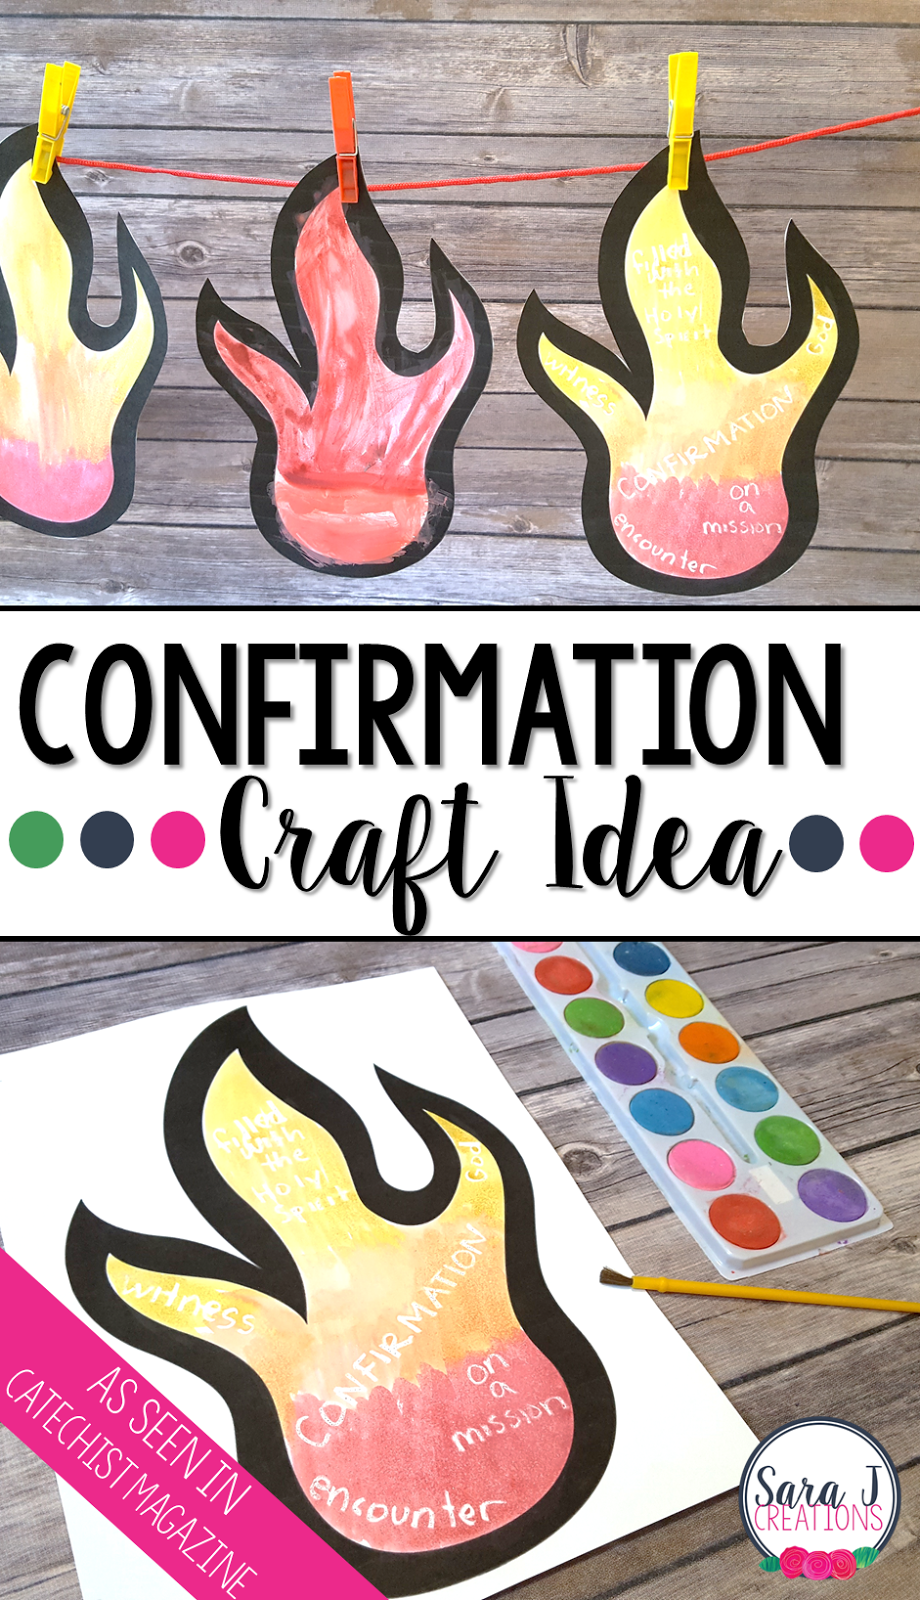 A craft idea for teaching about Confirmation and the Holy Spirit. As seen in Catechist Magazine.